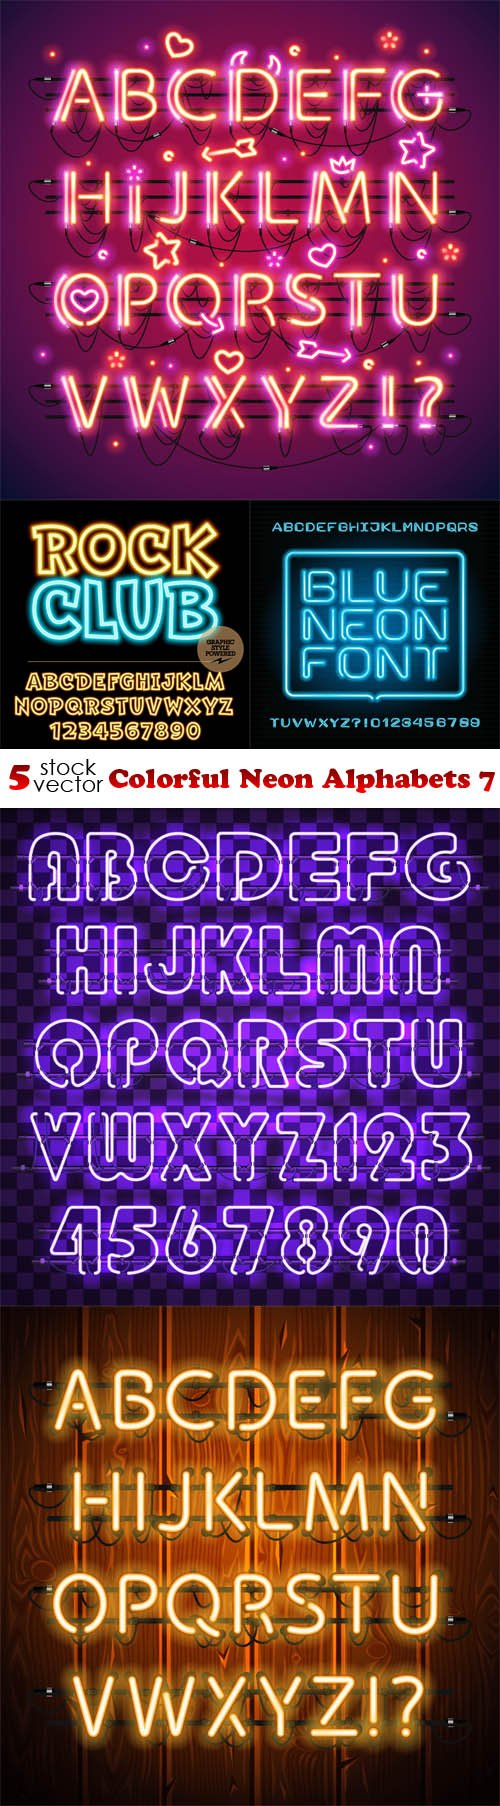 Vectors - Colorful Neon Alphabets 7